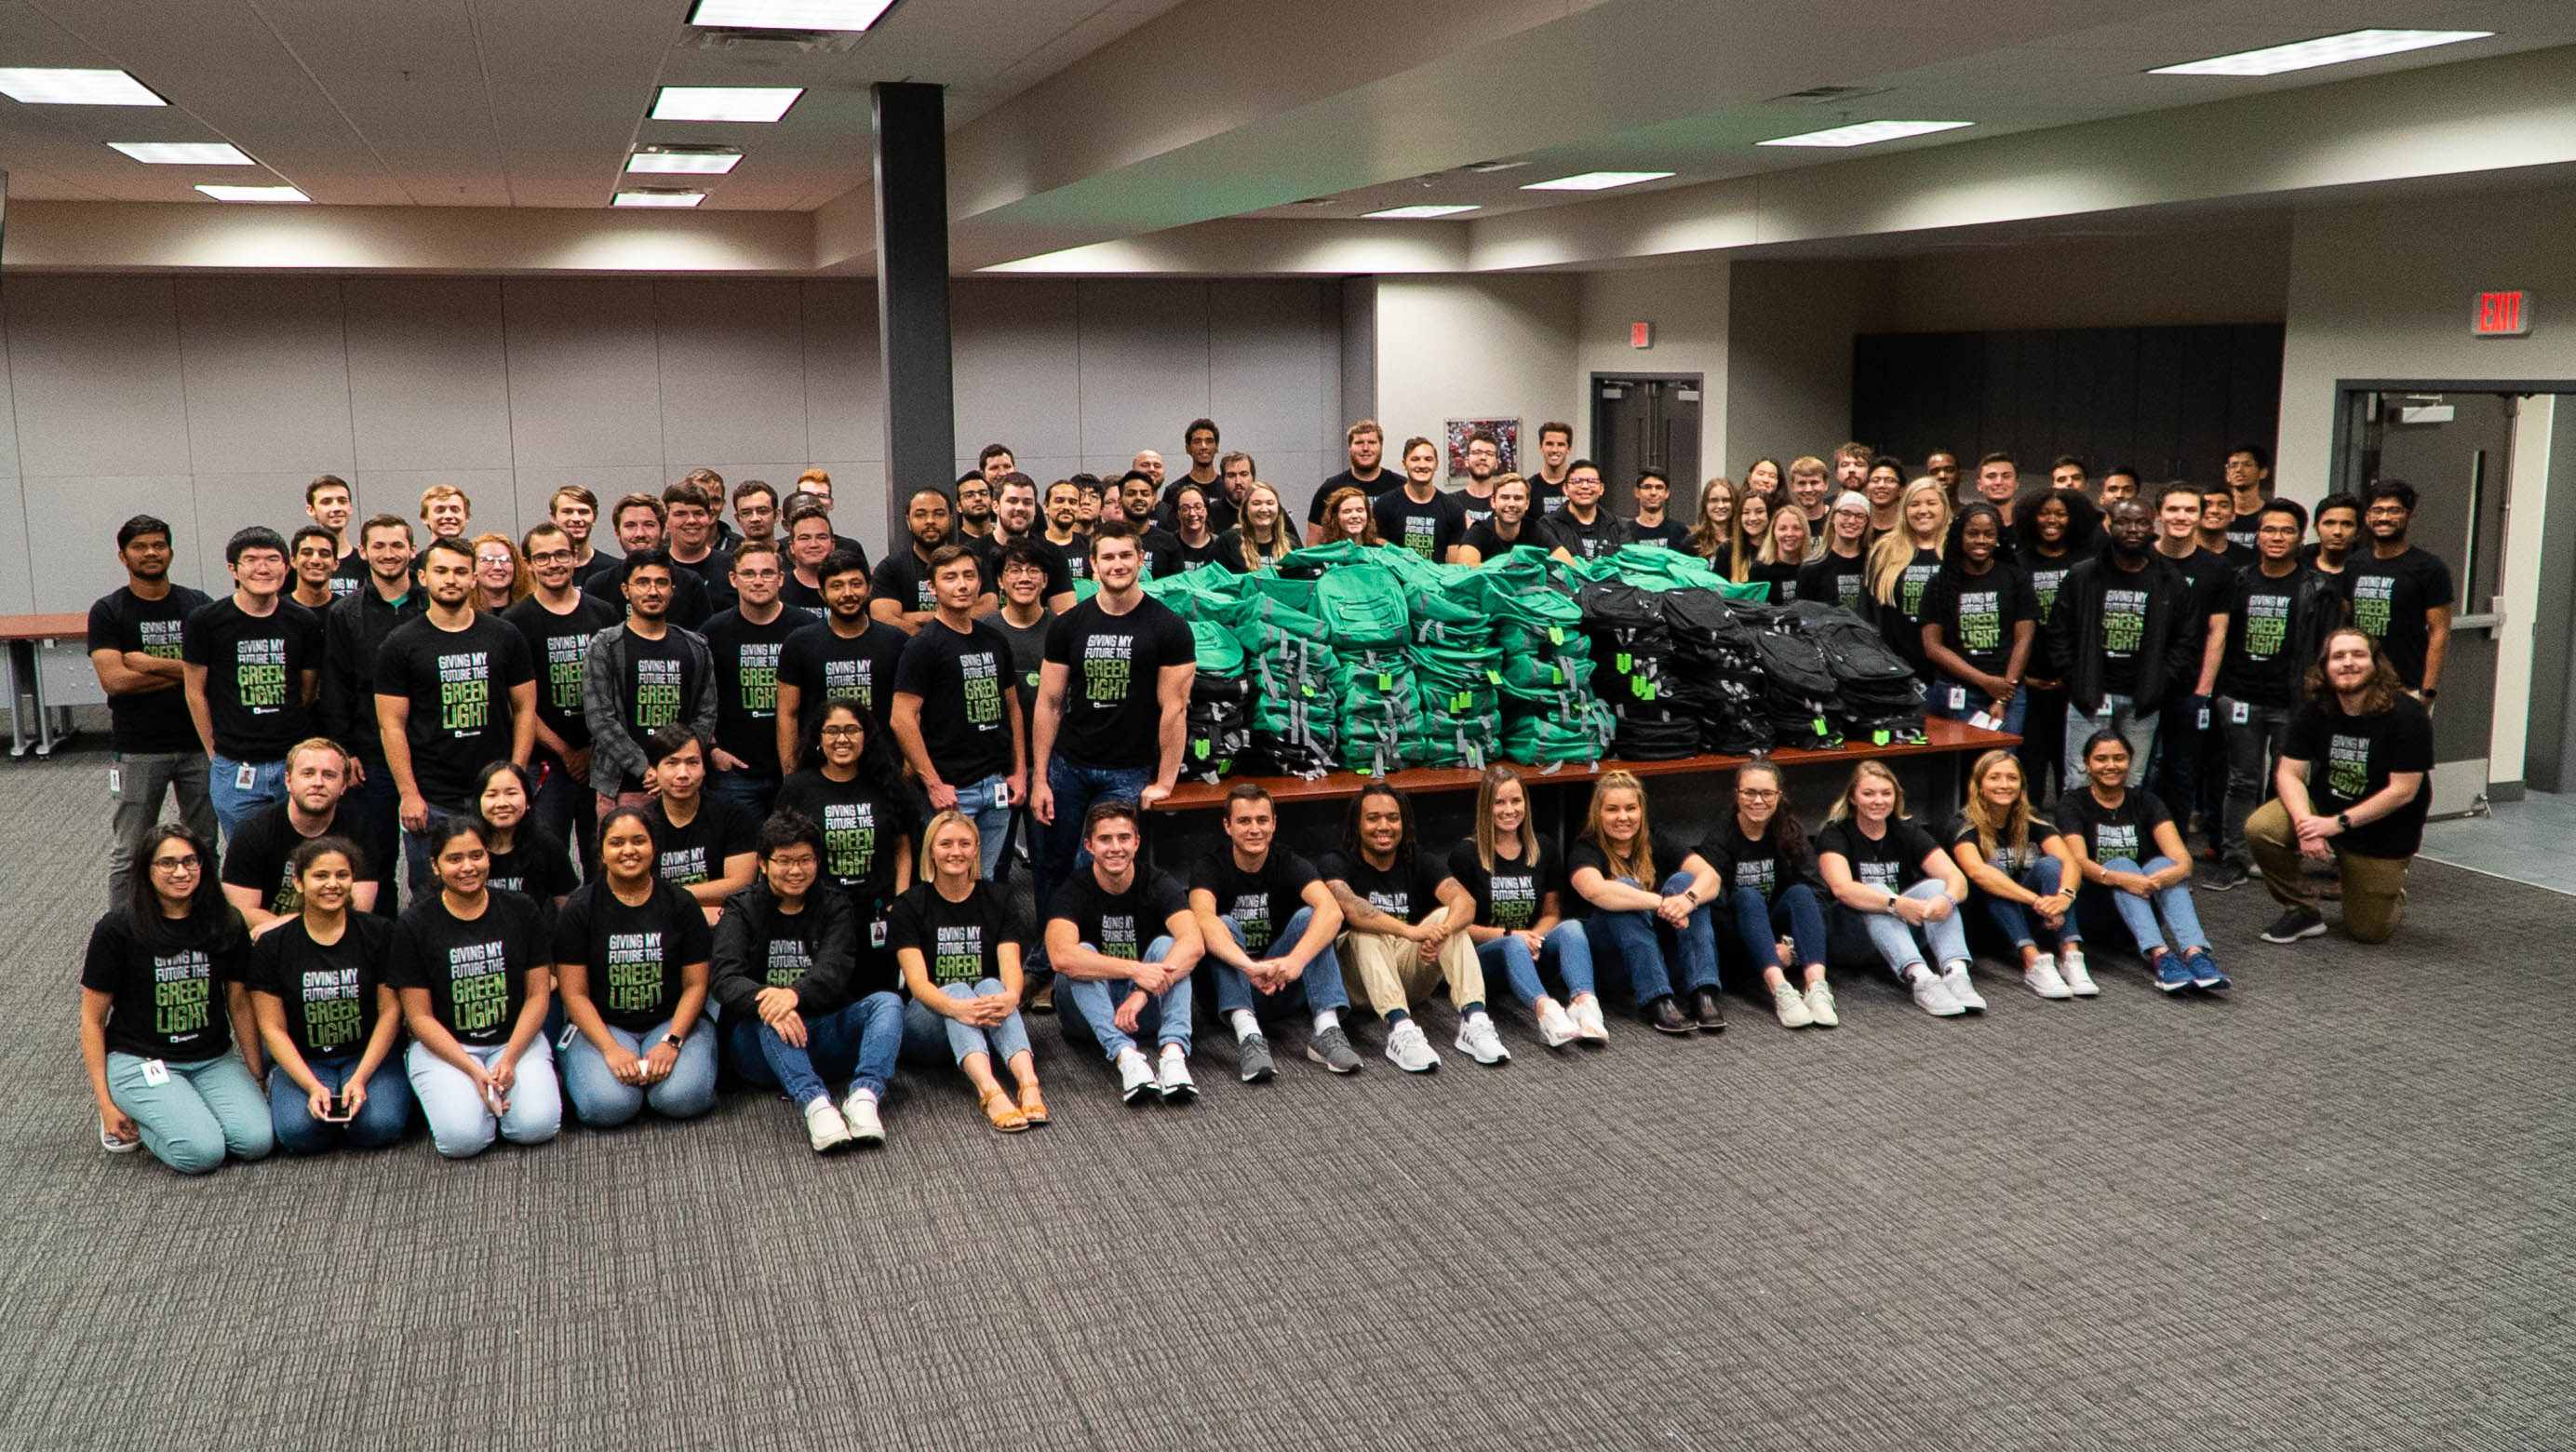 Paycom Interns Fill 600 Backpacks With School Supplies for OKC Students